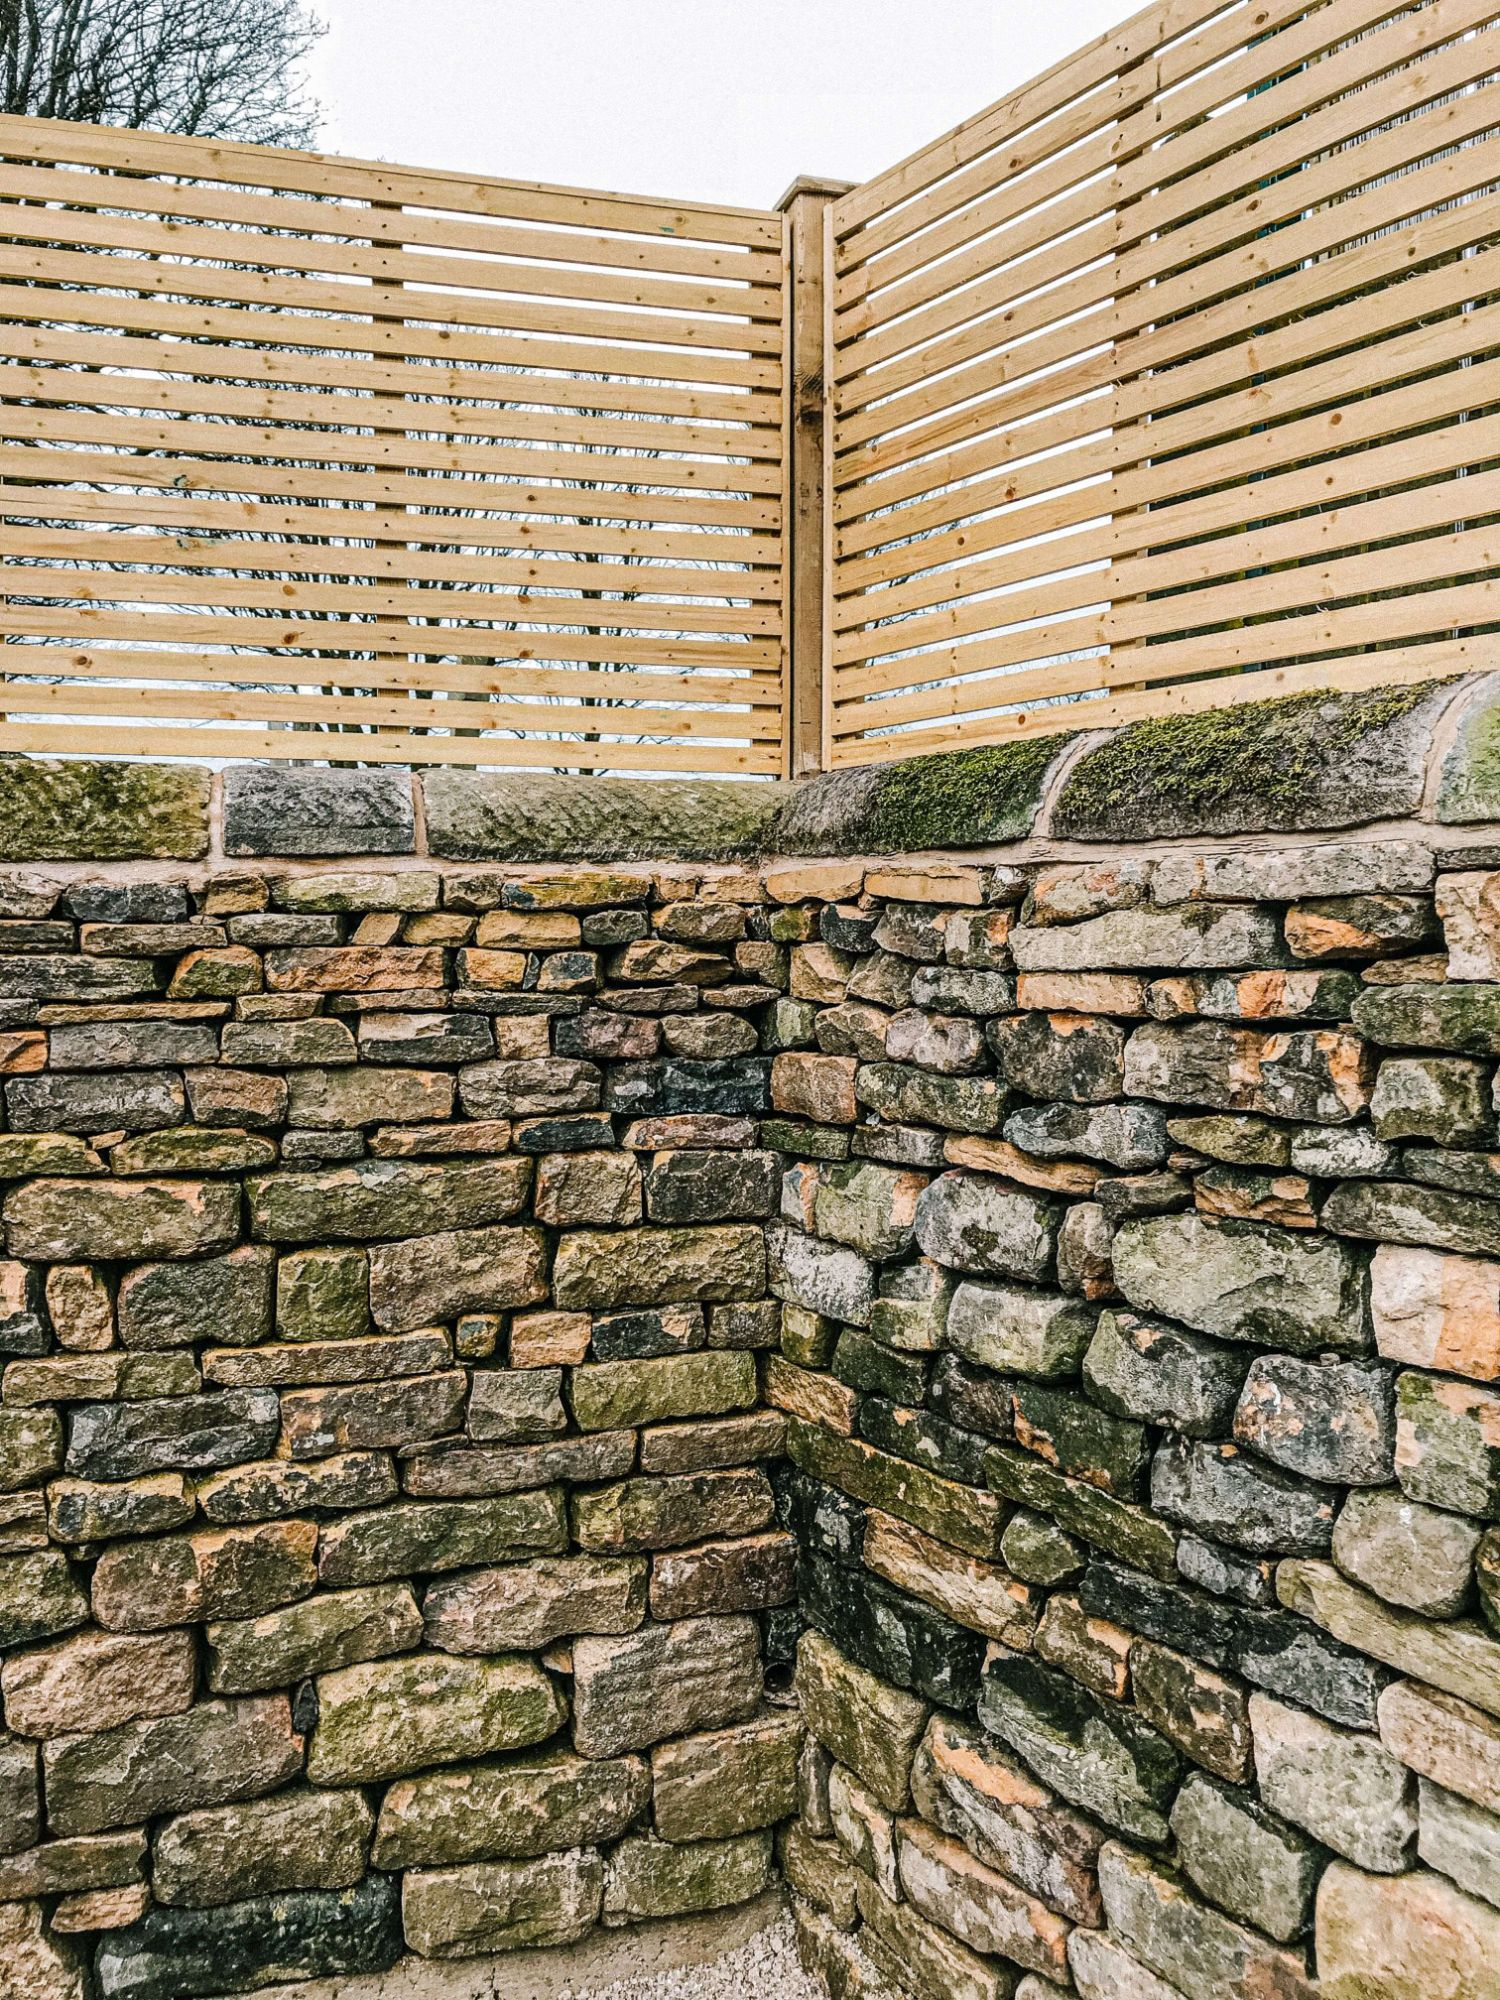 A photo of a corner dry stone wall with a fence above created by the Silver Oak team